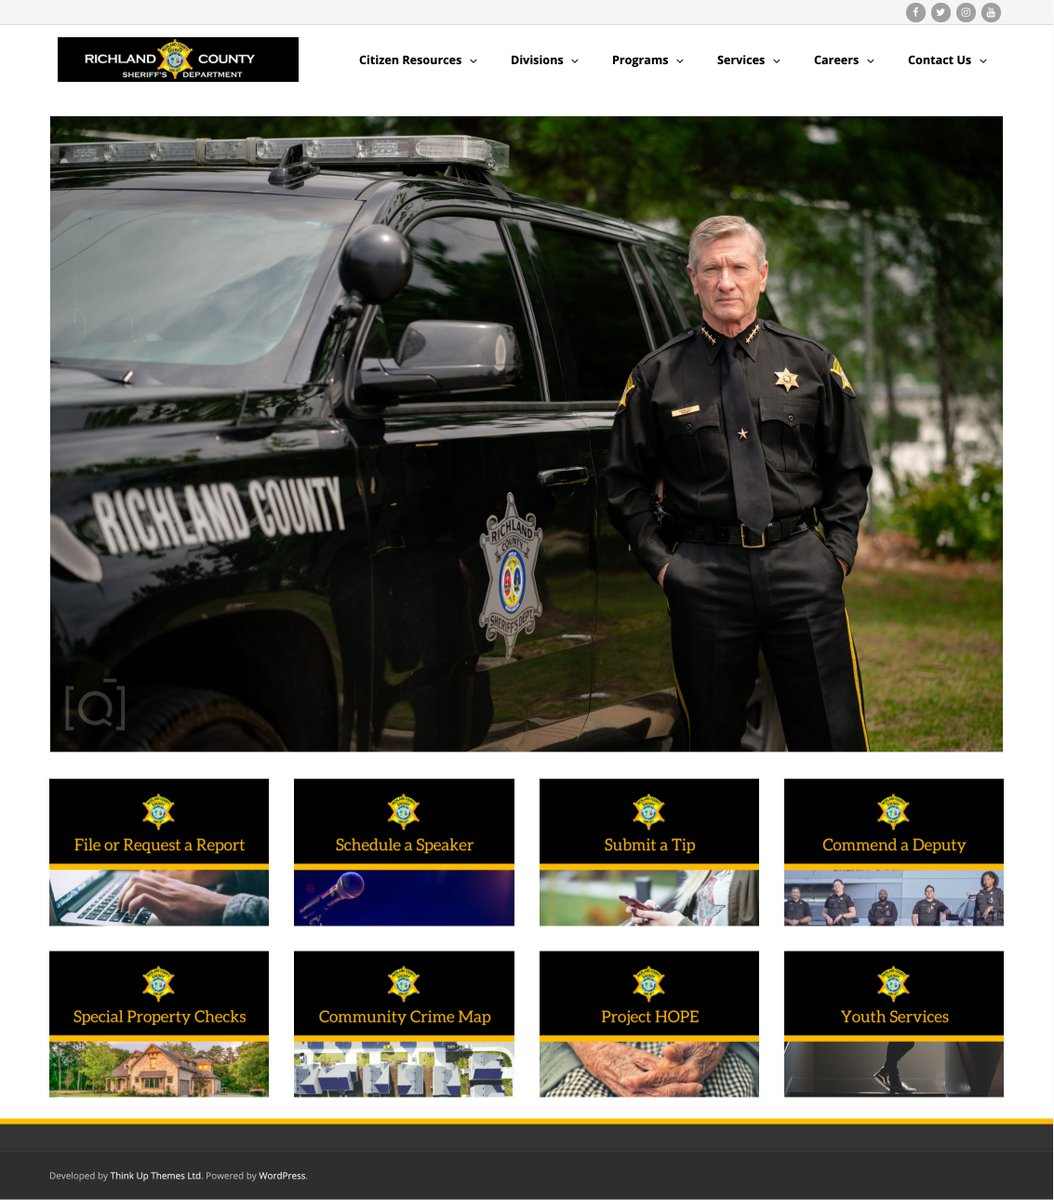 Have you visited rcsd.net lately? Weve recently changed a few things (like the WHOLE website)! Let us know what you think! #TeamRCSD